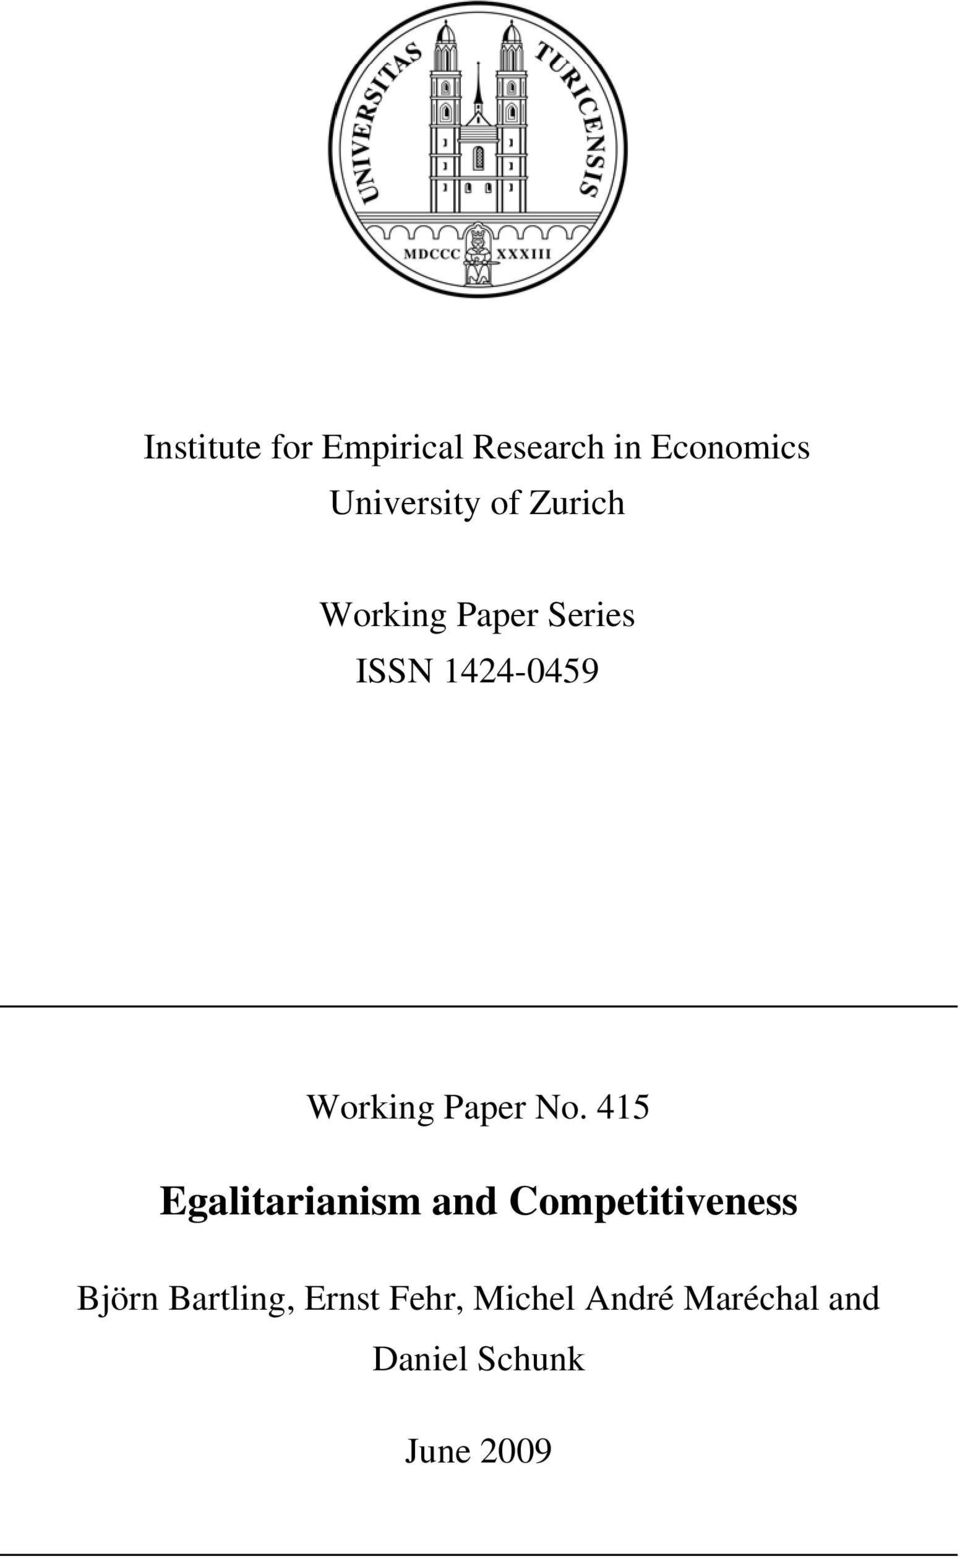 415 Egalitarianism and Competitiveness Björn Bartling,